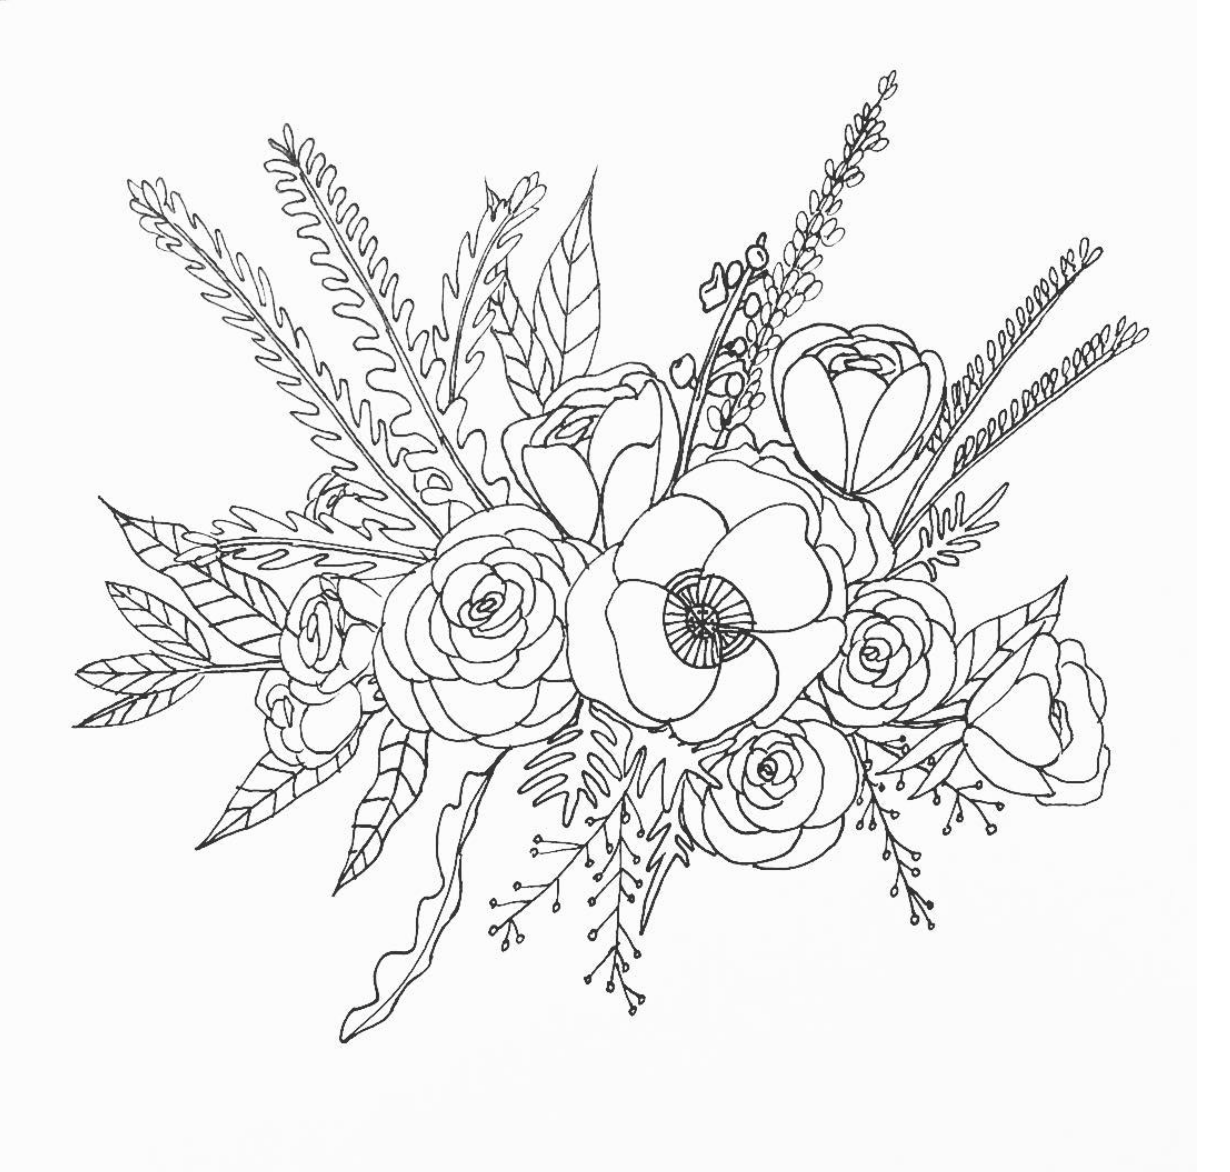 bouquet of flowers drawing simple flower bouquet drawing flowers healthy flower of flowers drawing bouquet